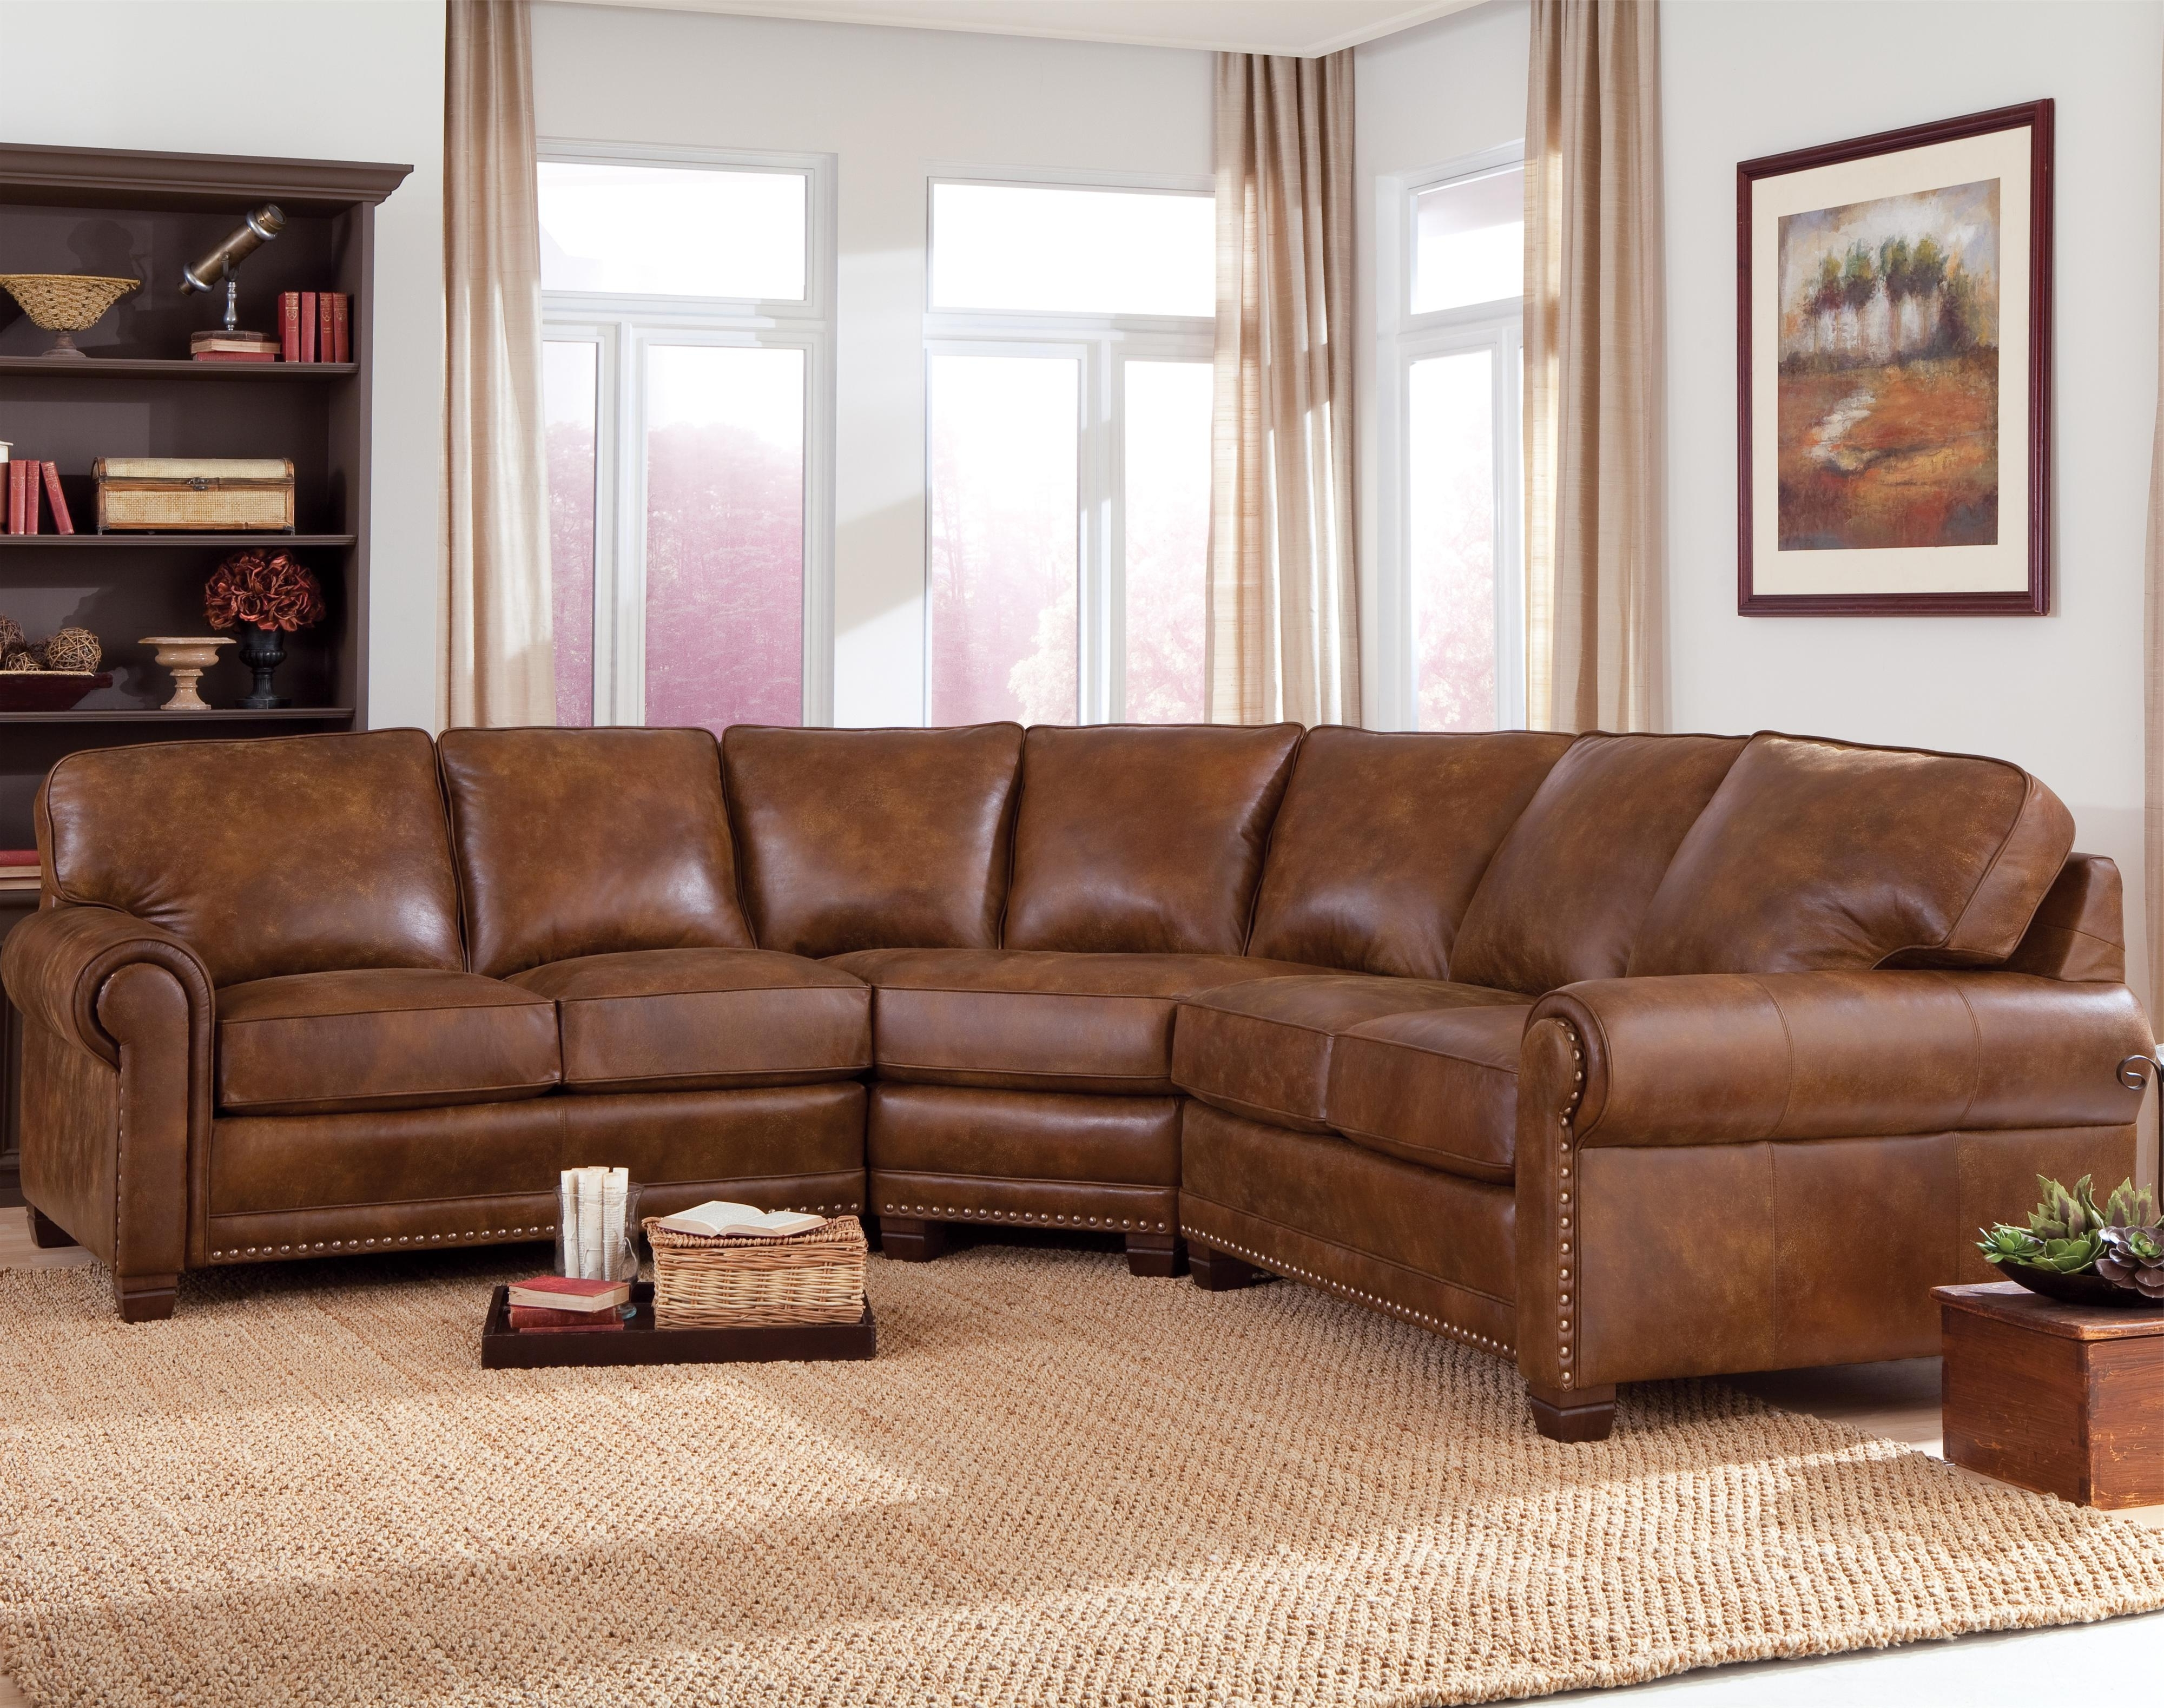 Traditional 3 Piece Sectional Sofa With Nailhead Trimsmith Intended For Popular Sectional Sofas With Nailhead Trim (View 8 of 20)